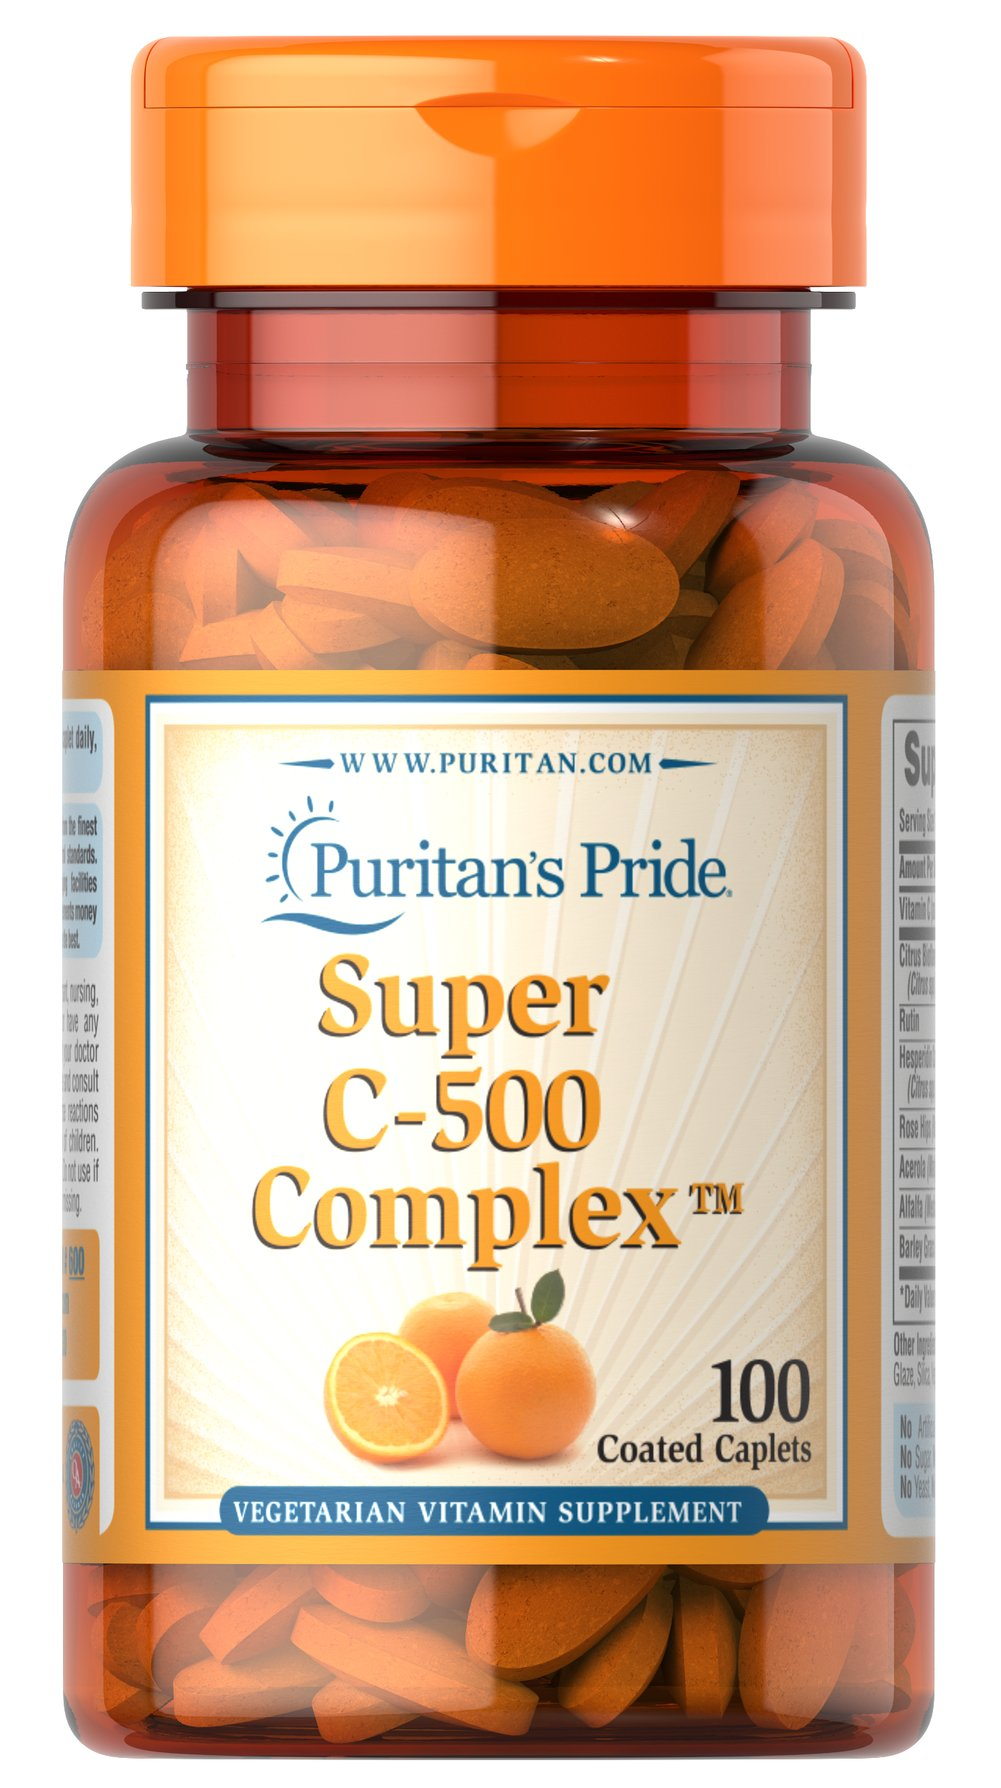 Vitamin C-500 Complex  100 Coated Caplets 500 mg $11.69